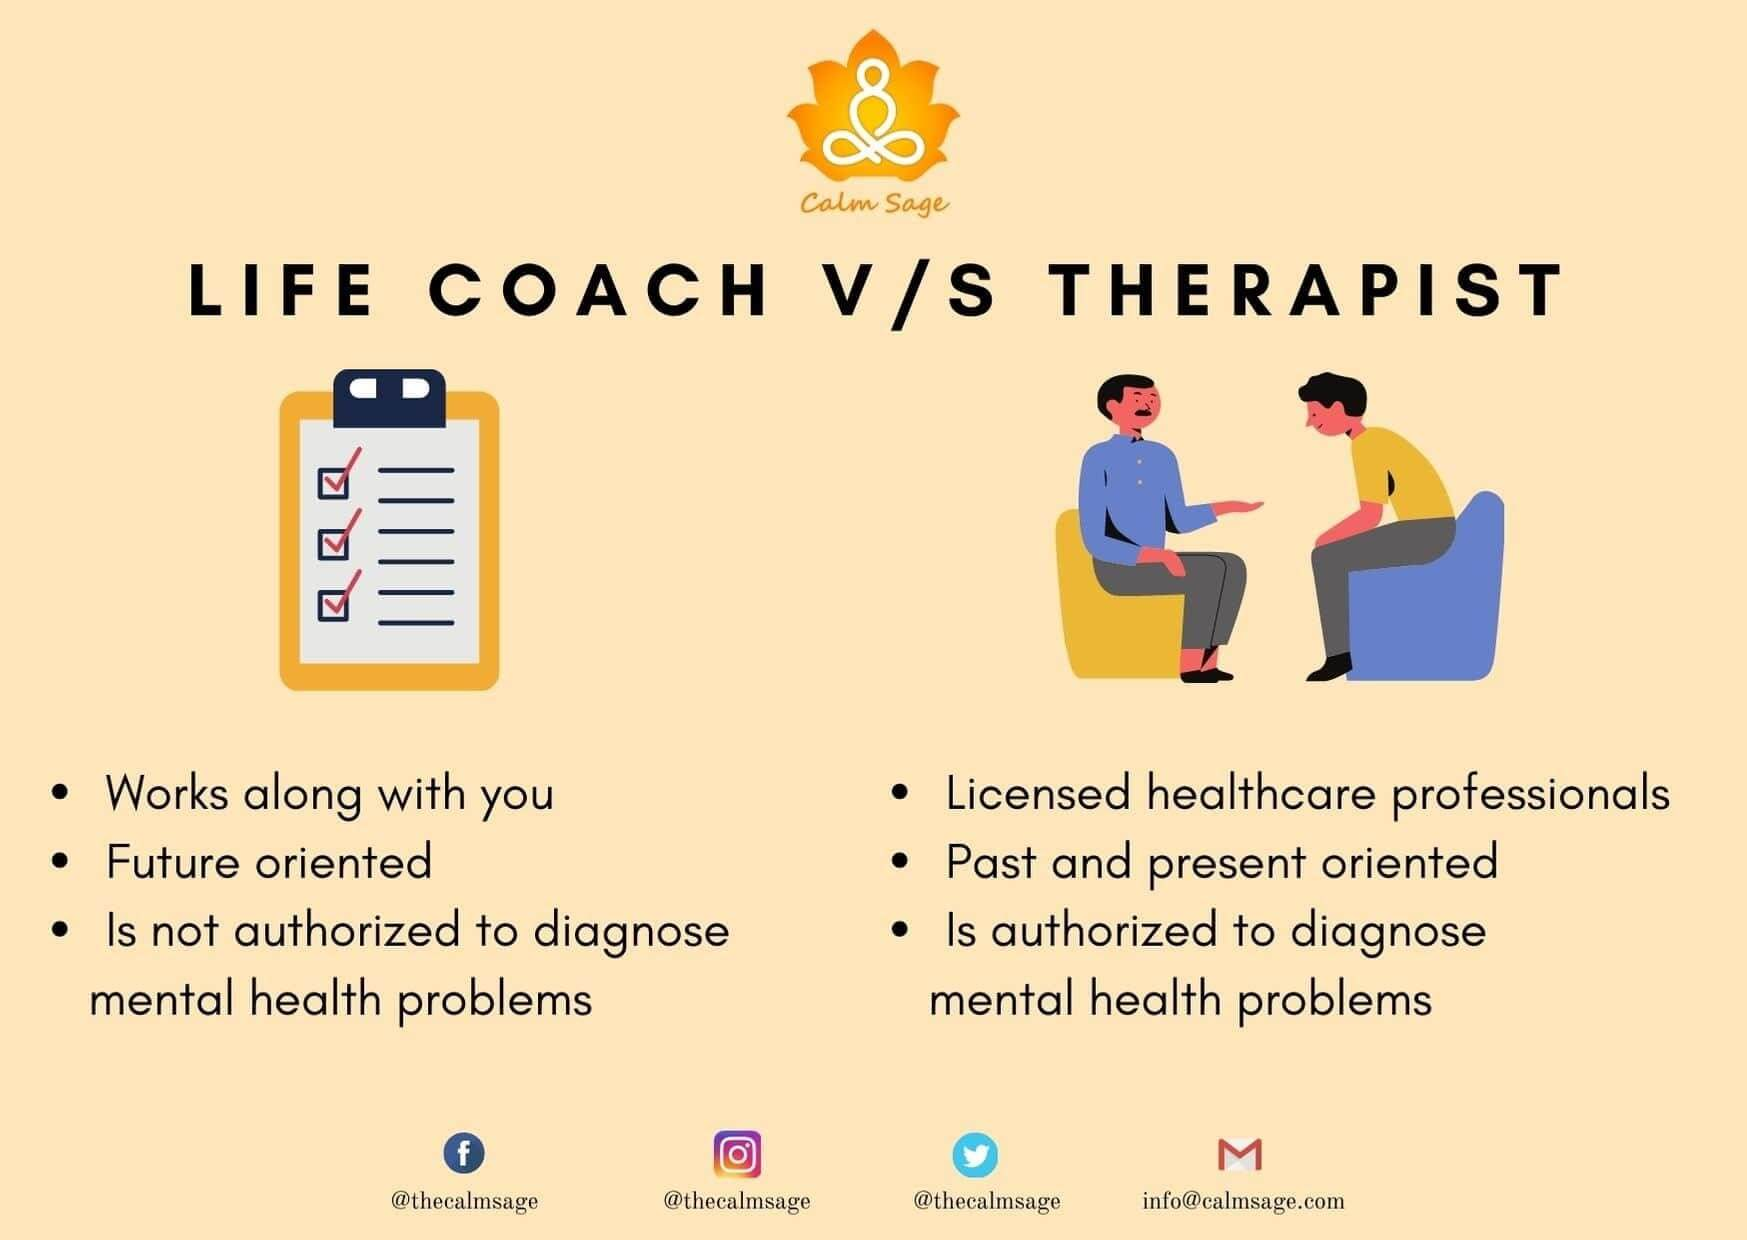 Life Coach and Therapist